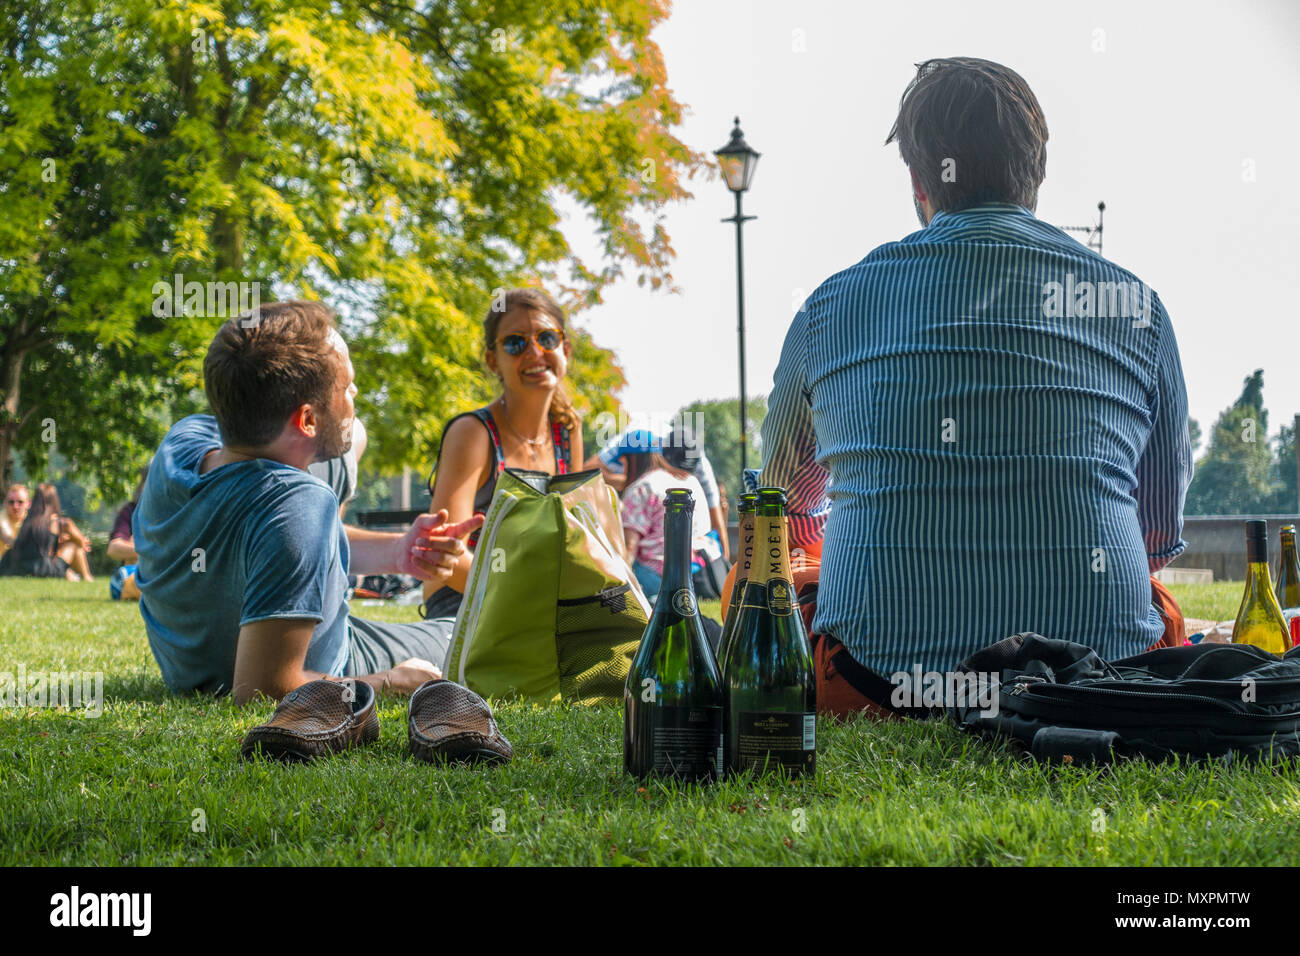 friends-enjoy-the-good-weather-and-have-a-picnic-in-the-park-at-furnival-gardens-at-hammersmith-in-london-uk-MXPMTW.jpg